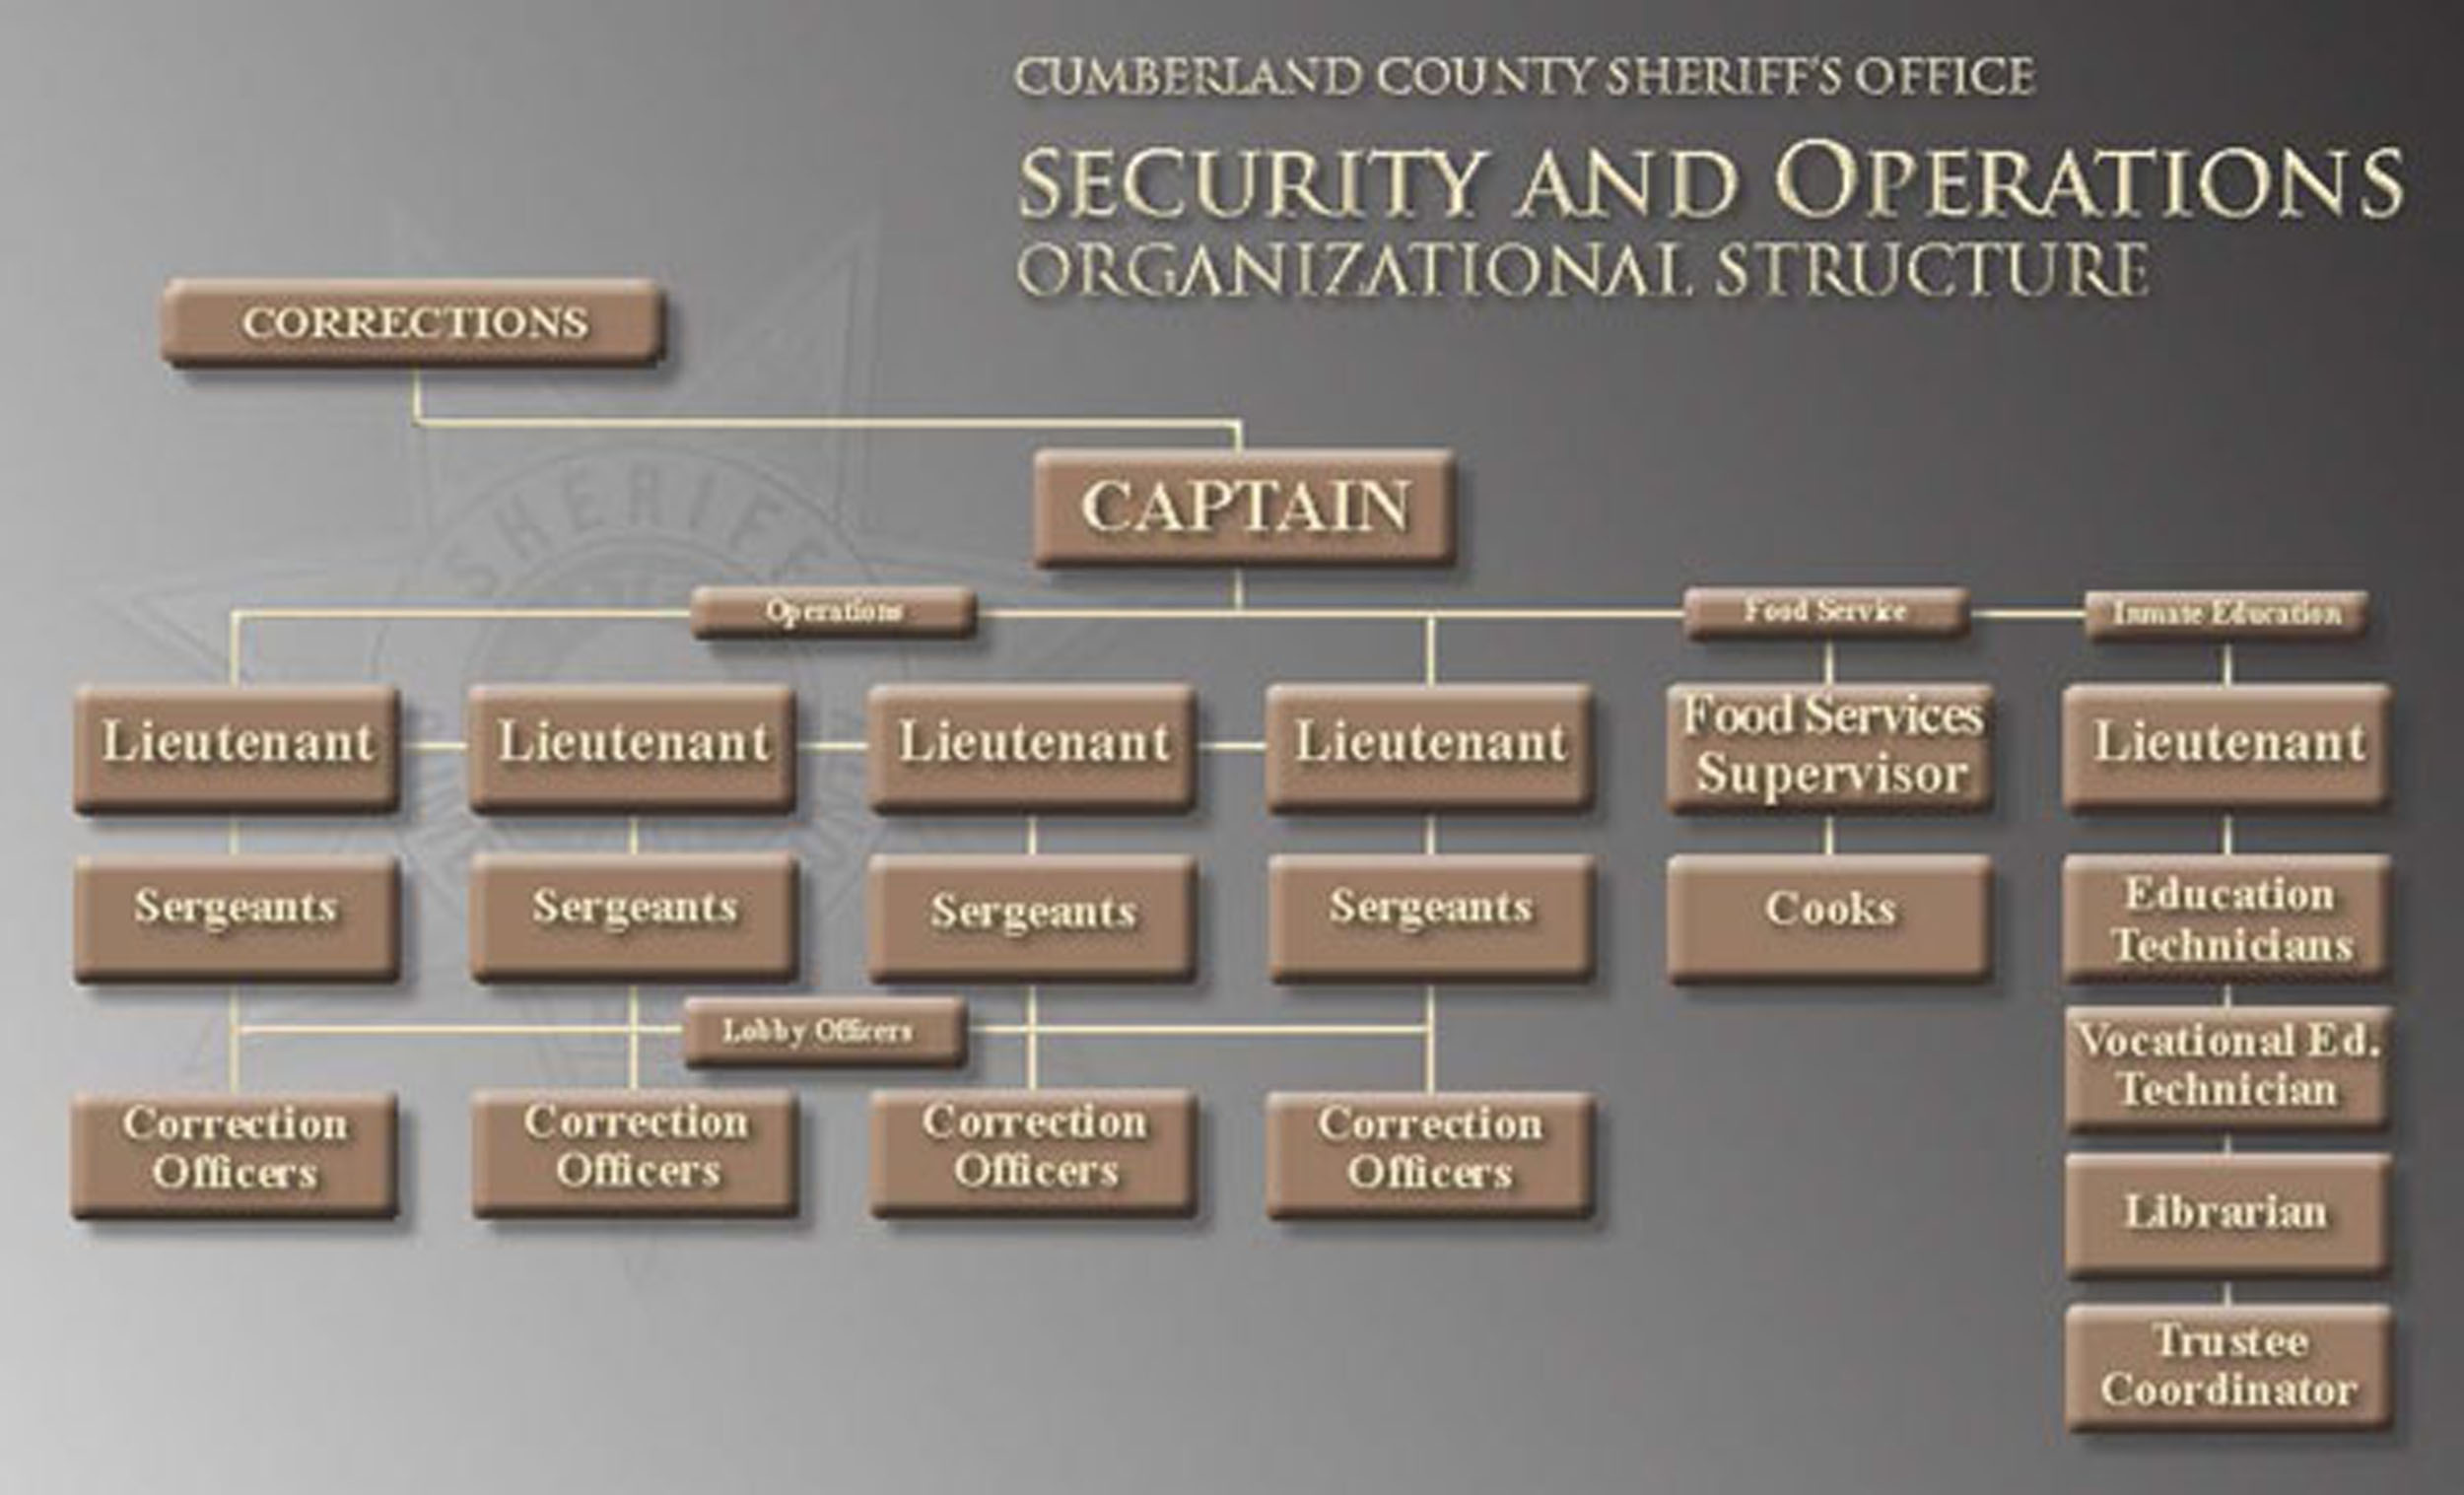 Cumberland County Sheriff's Office Jail Security and Operations Organizational Structure